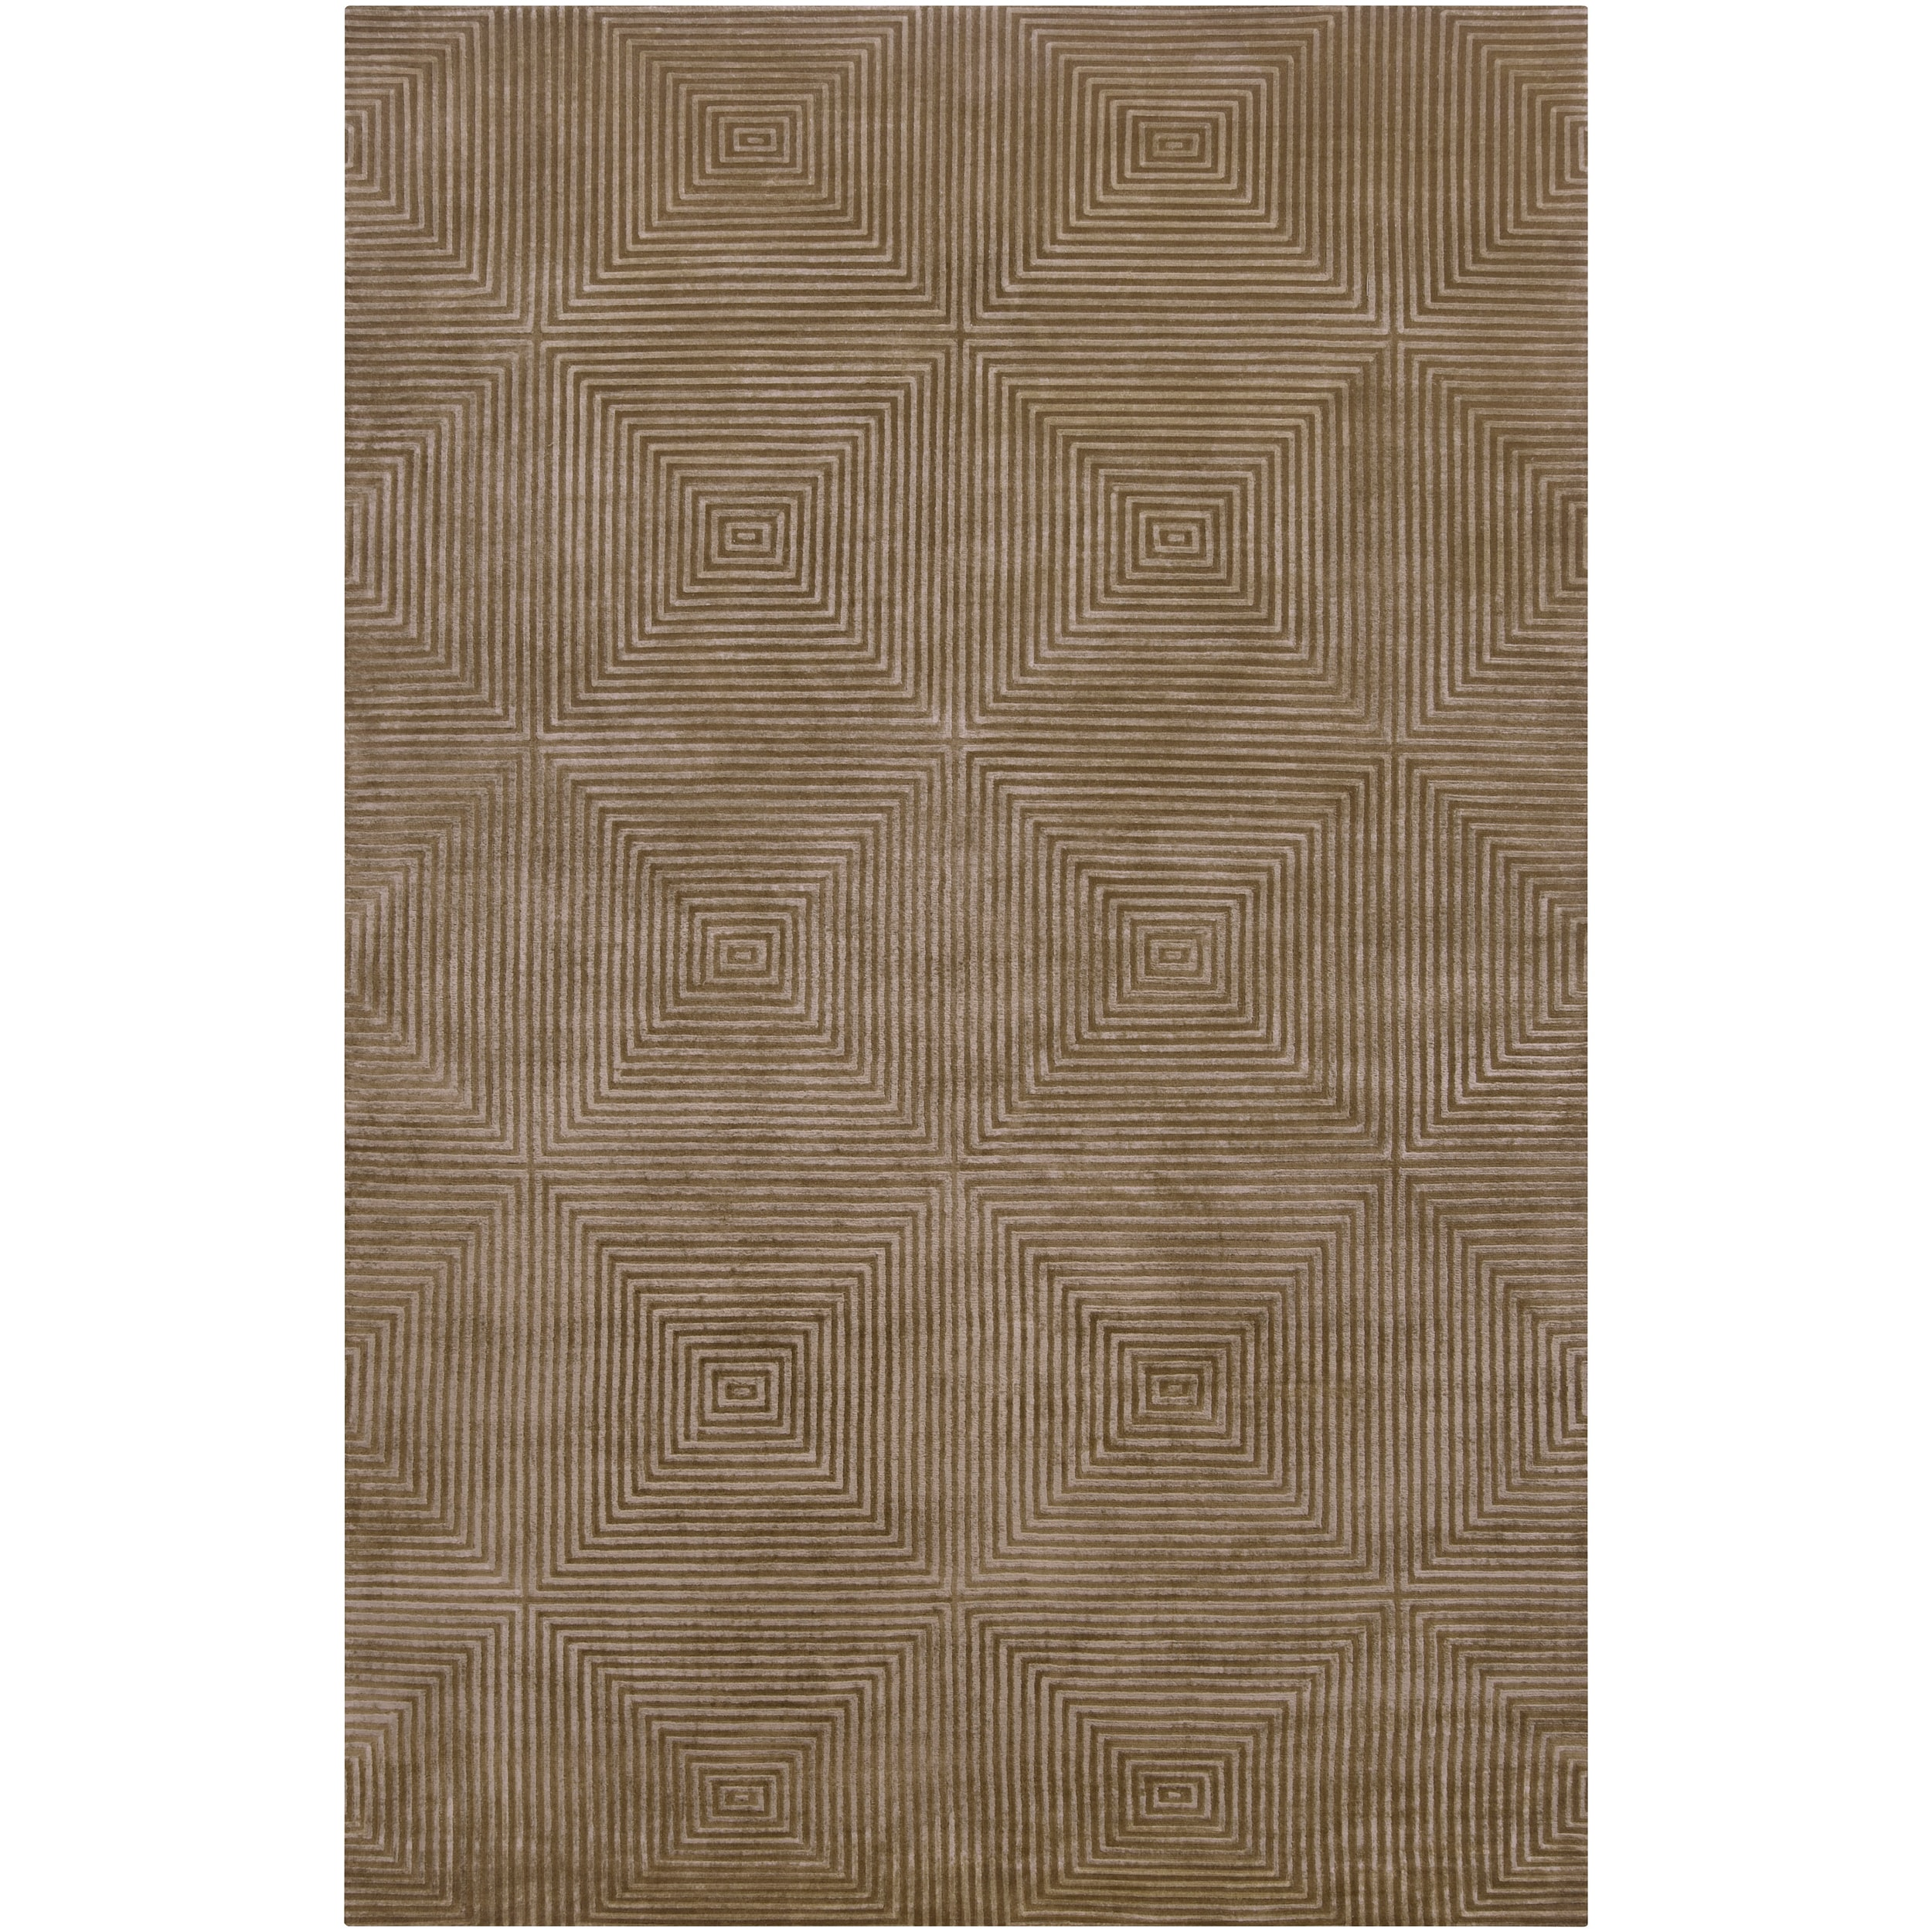 Hand-knotted Green Aviato Geometric Wool Rug (4' x 6')